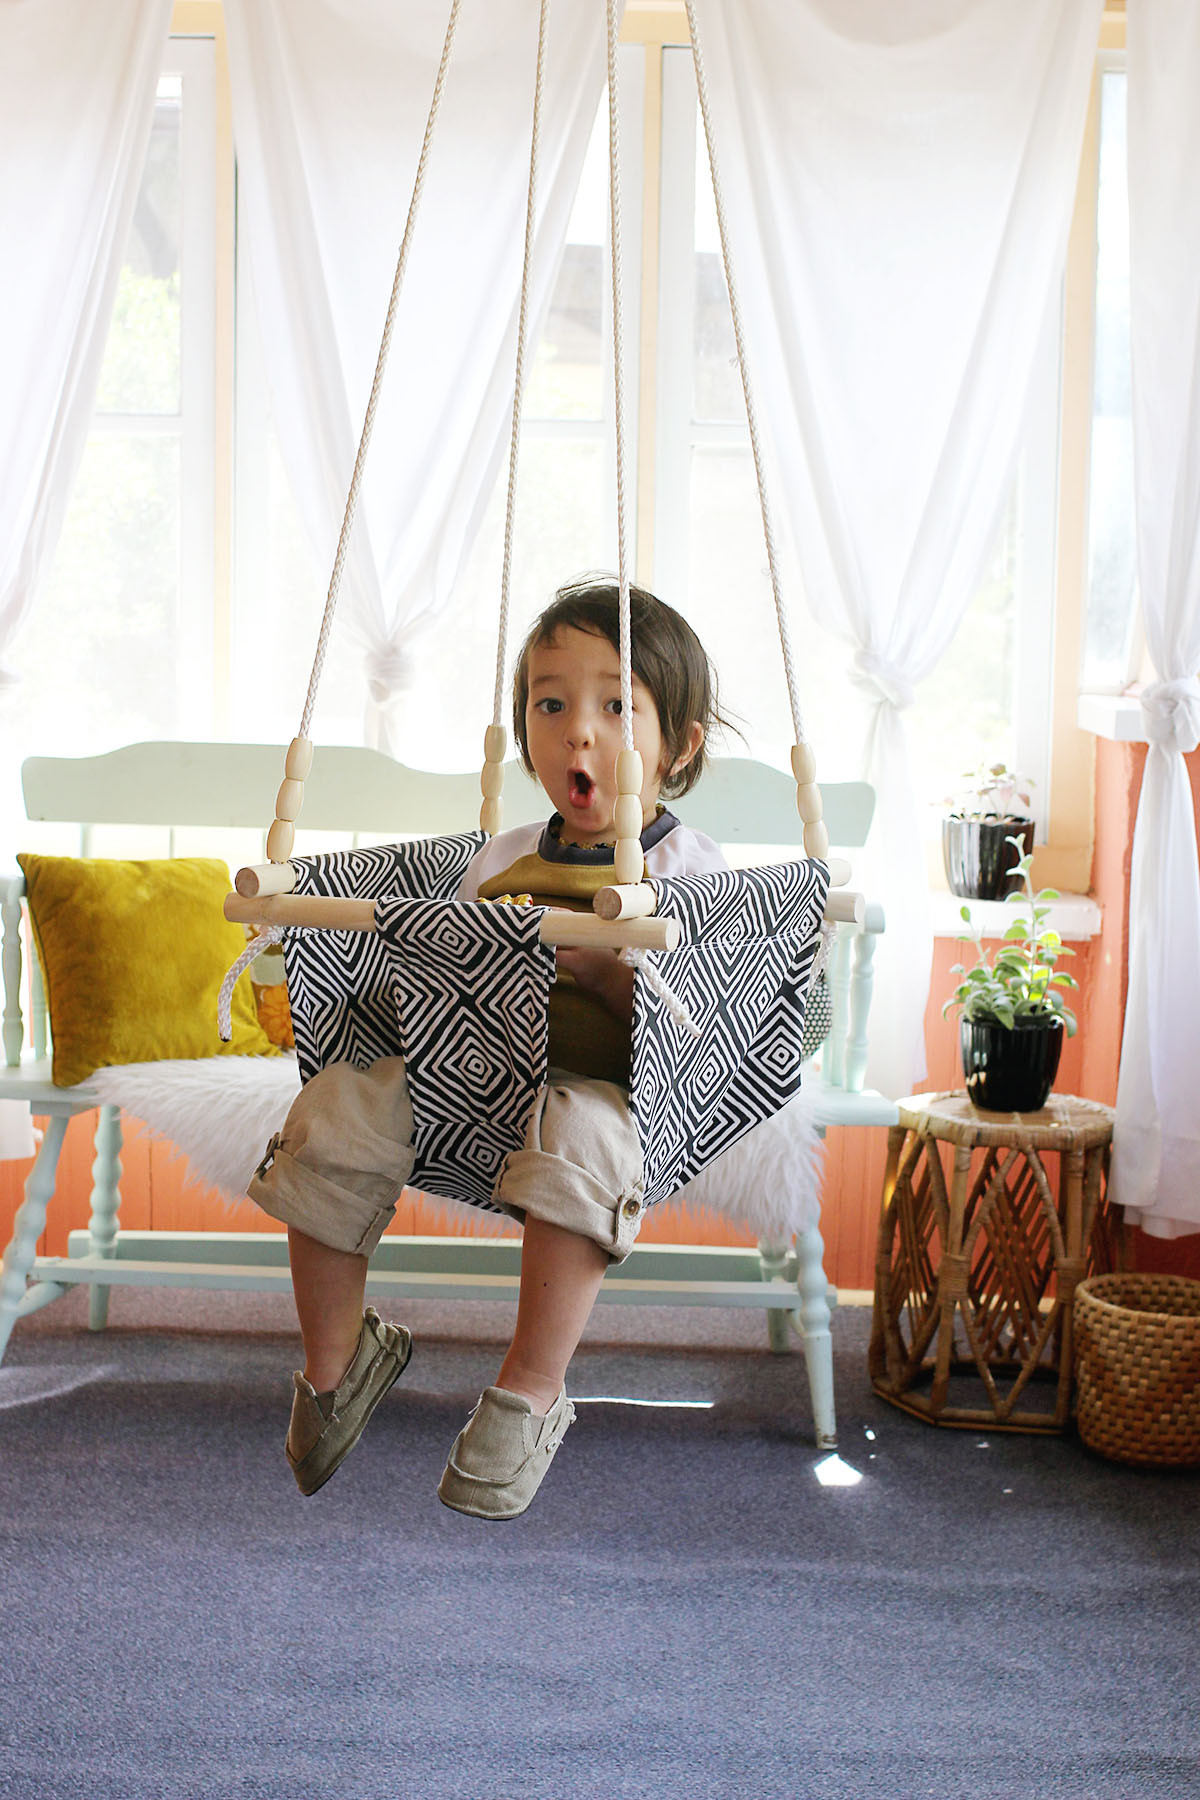 Best ideas about DIY Baby Swing . Save or Pin Baby and Toddler Swing DIY A Beautiful Mess Now.